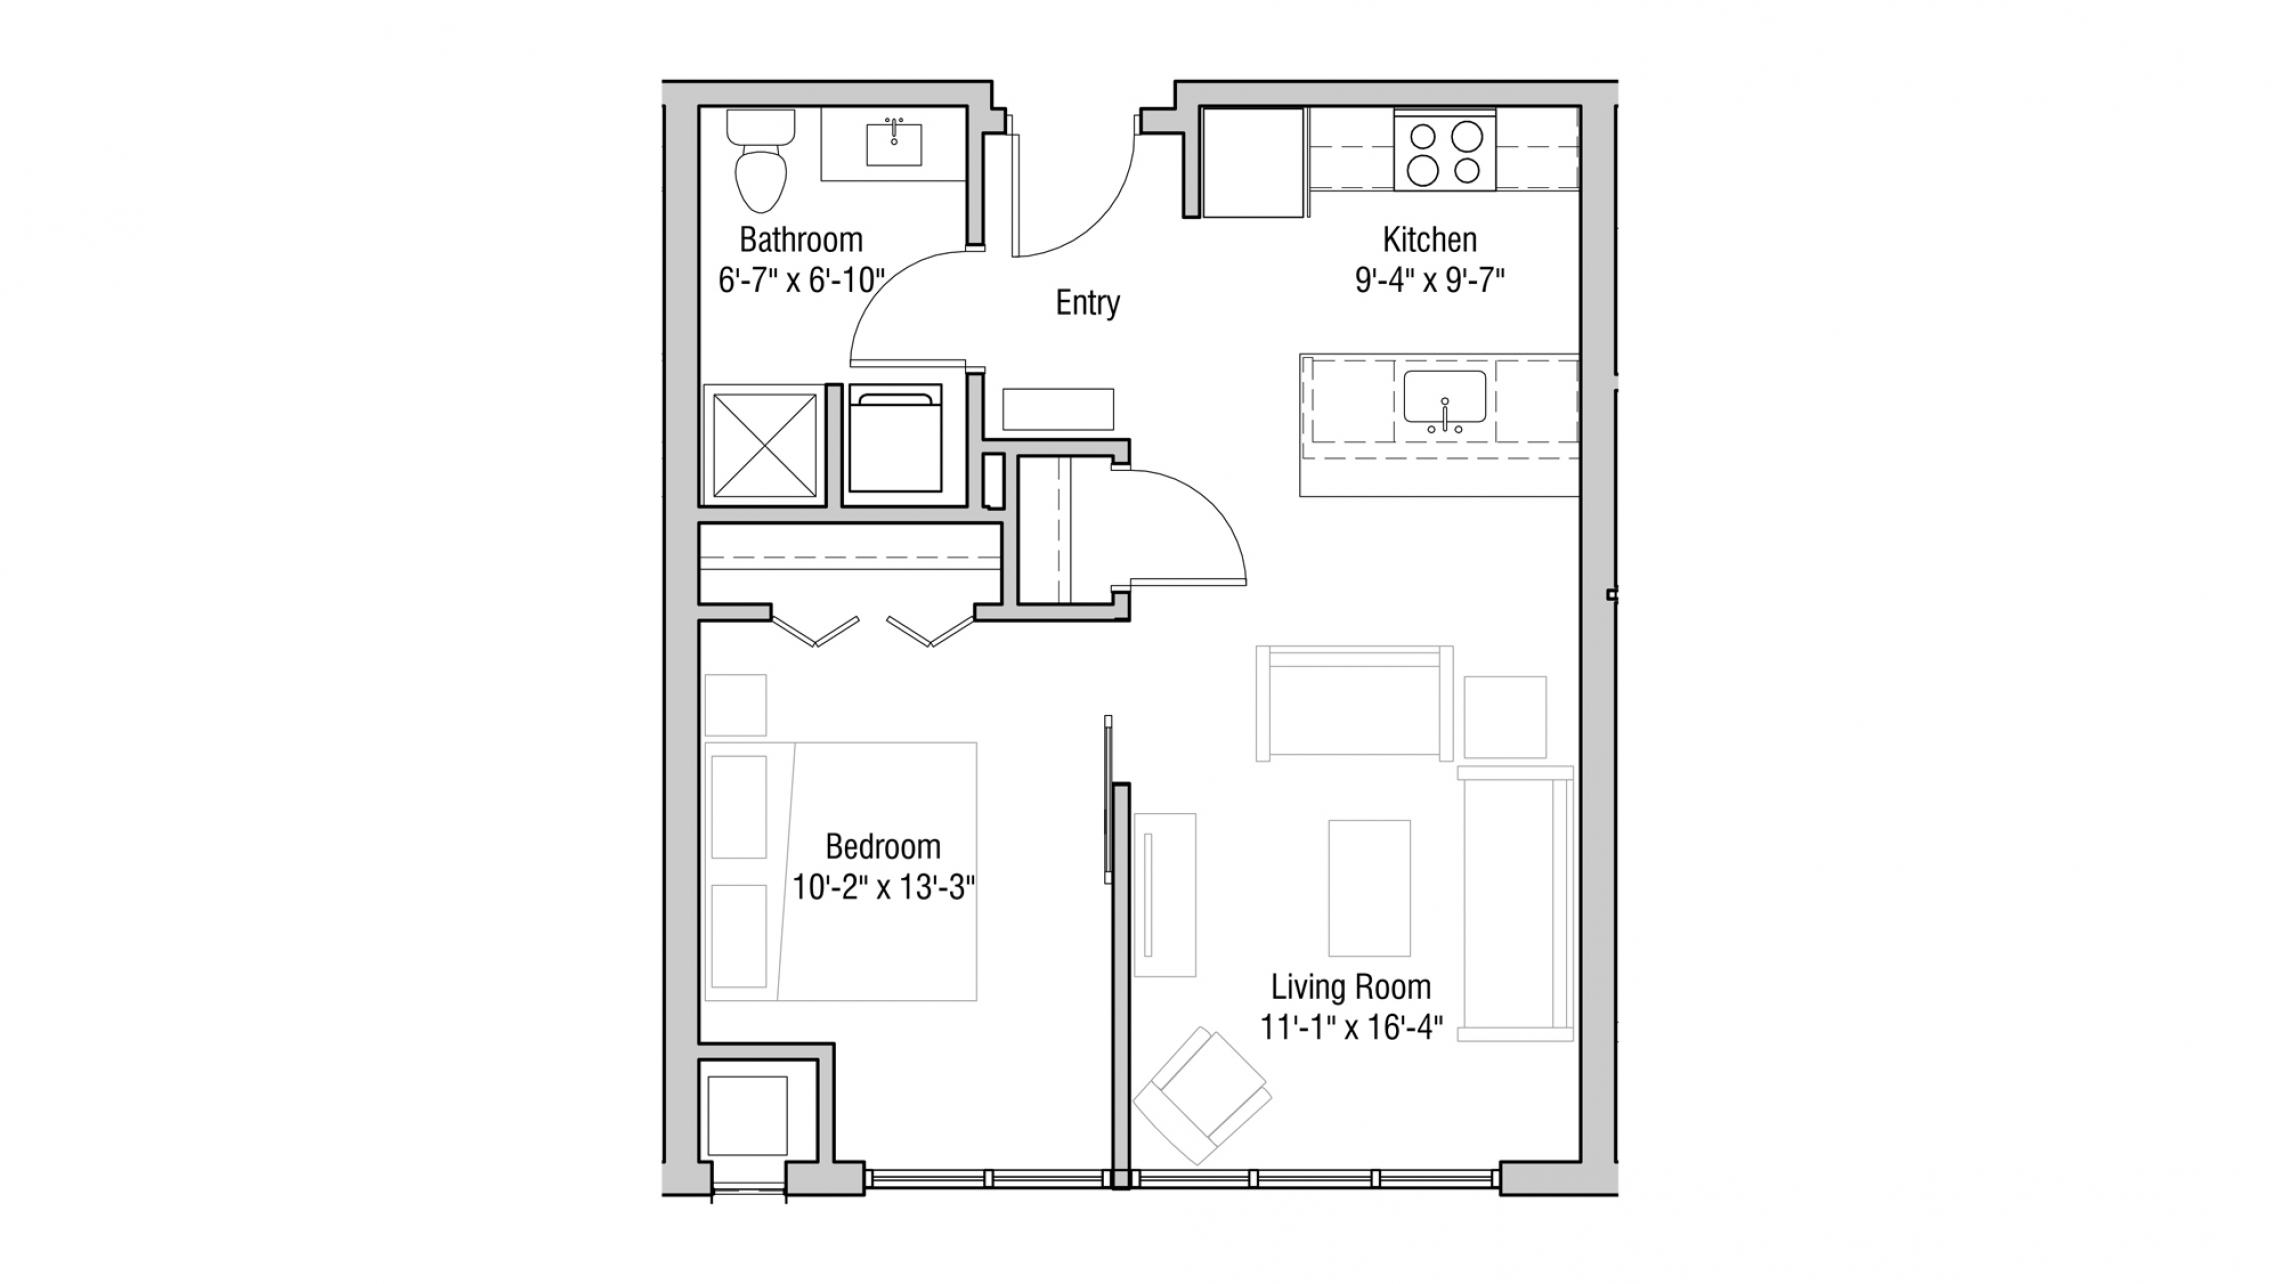 ULI Quarter Row 307 - One Bedroom, One Bathroom